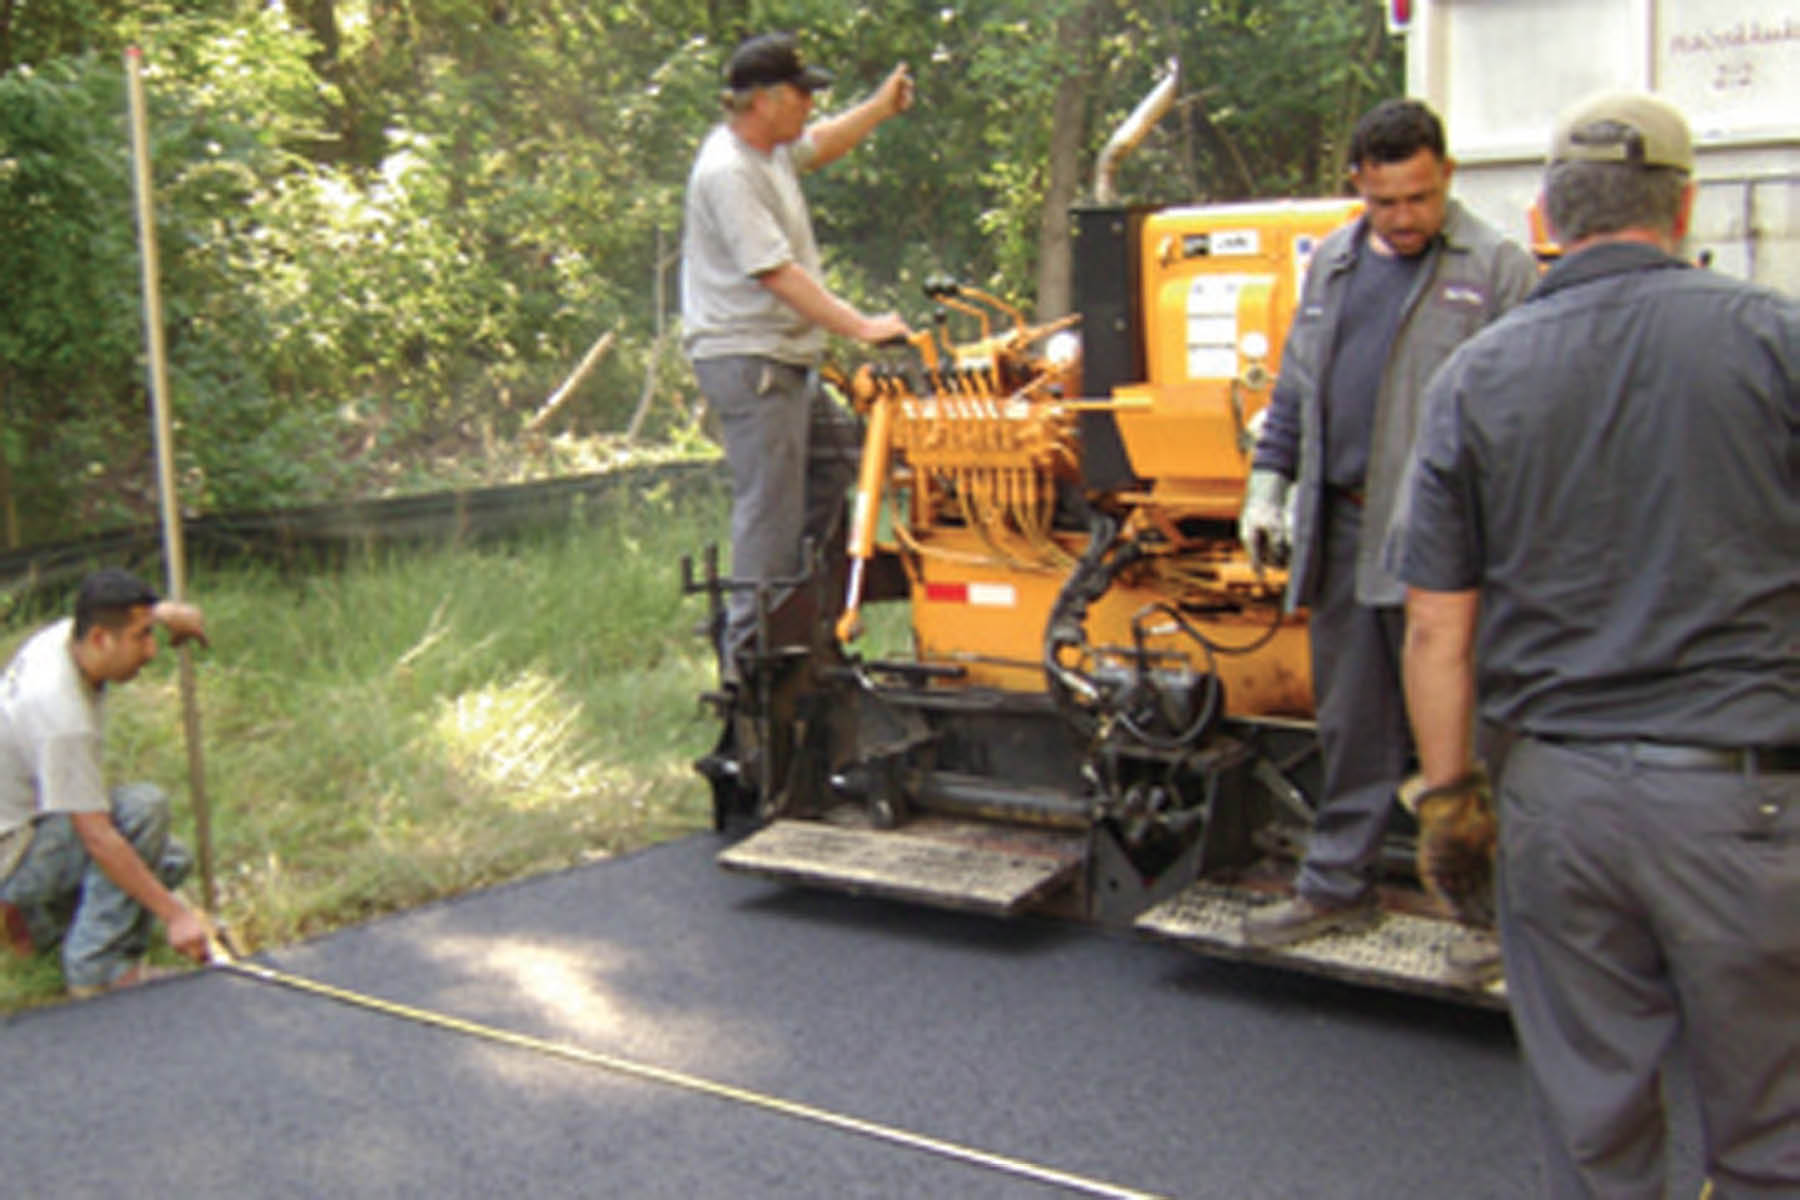 Residential: Driveway Paving, Asphalt Additions, Asphalt Overlay, Asphalt Patching, Sealcoating, Crack Filling, Trench Drains, Sport Courts